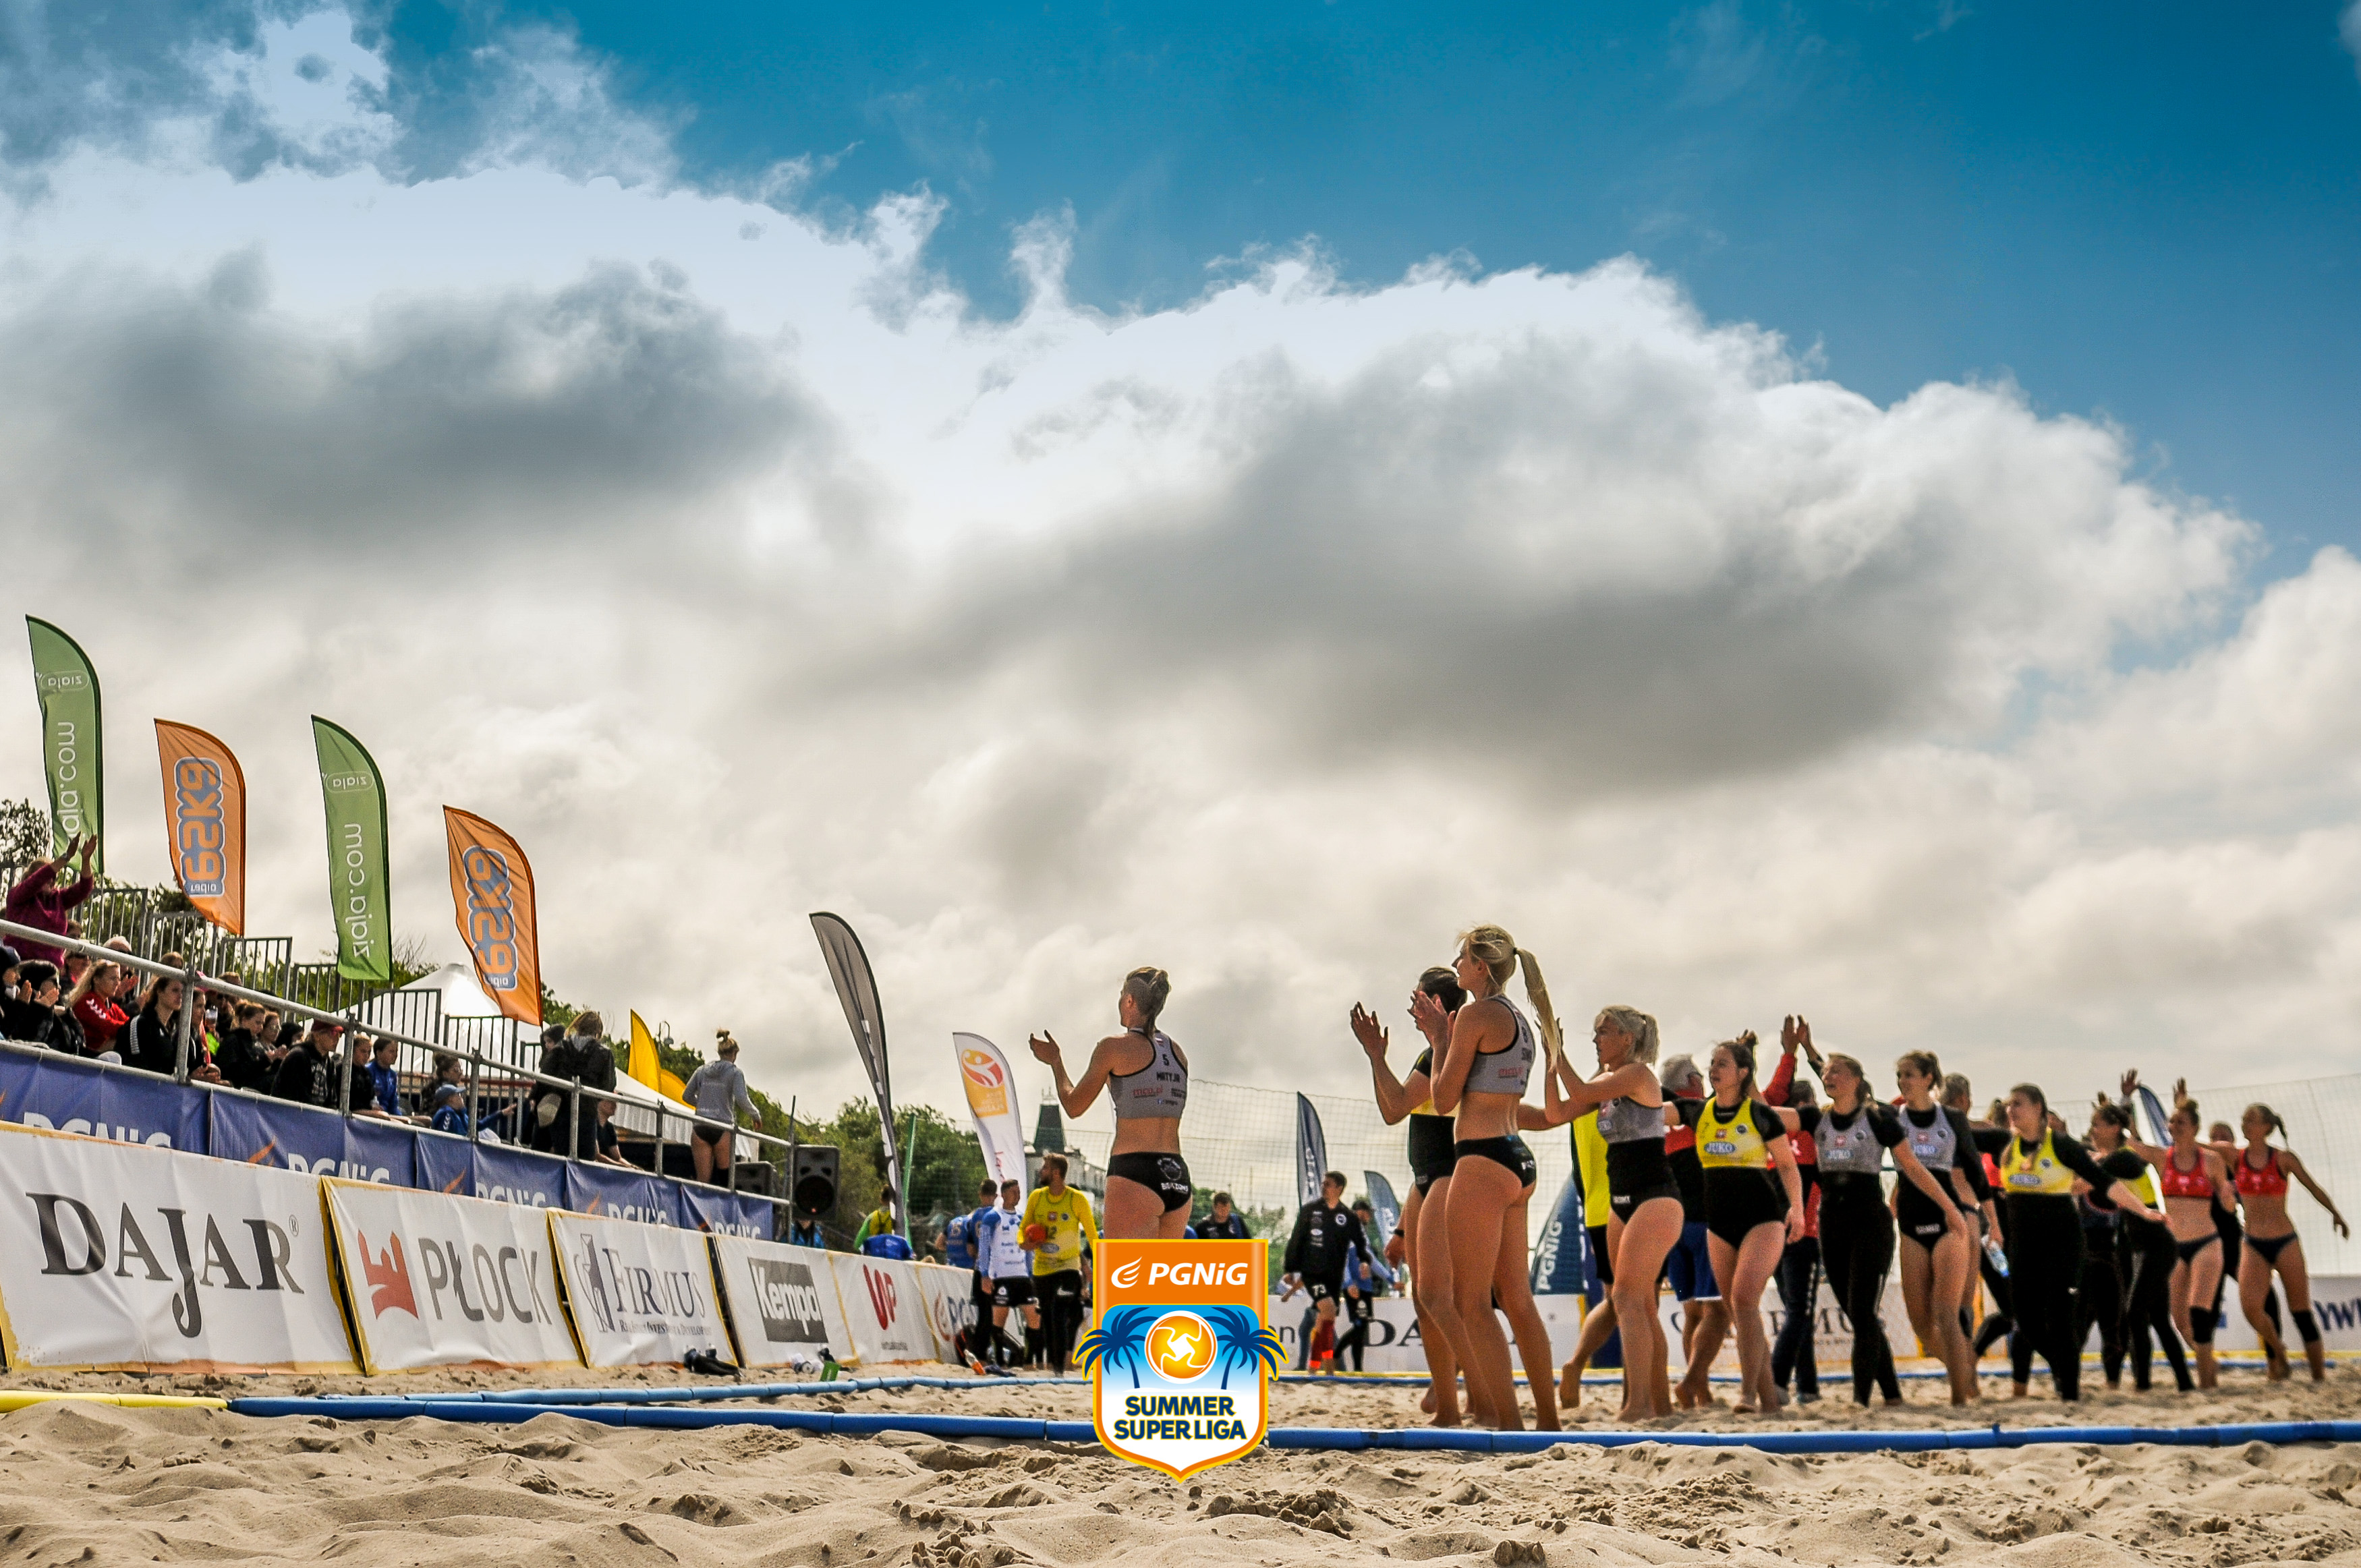 PGNiG SUMMER SUPERLIGA MIELNO 2018